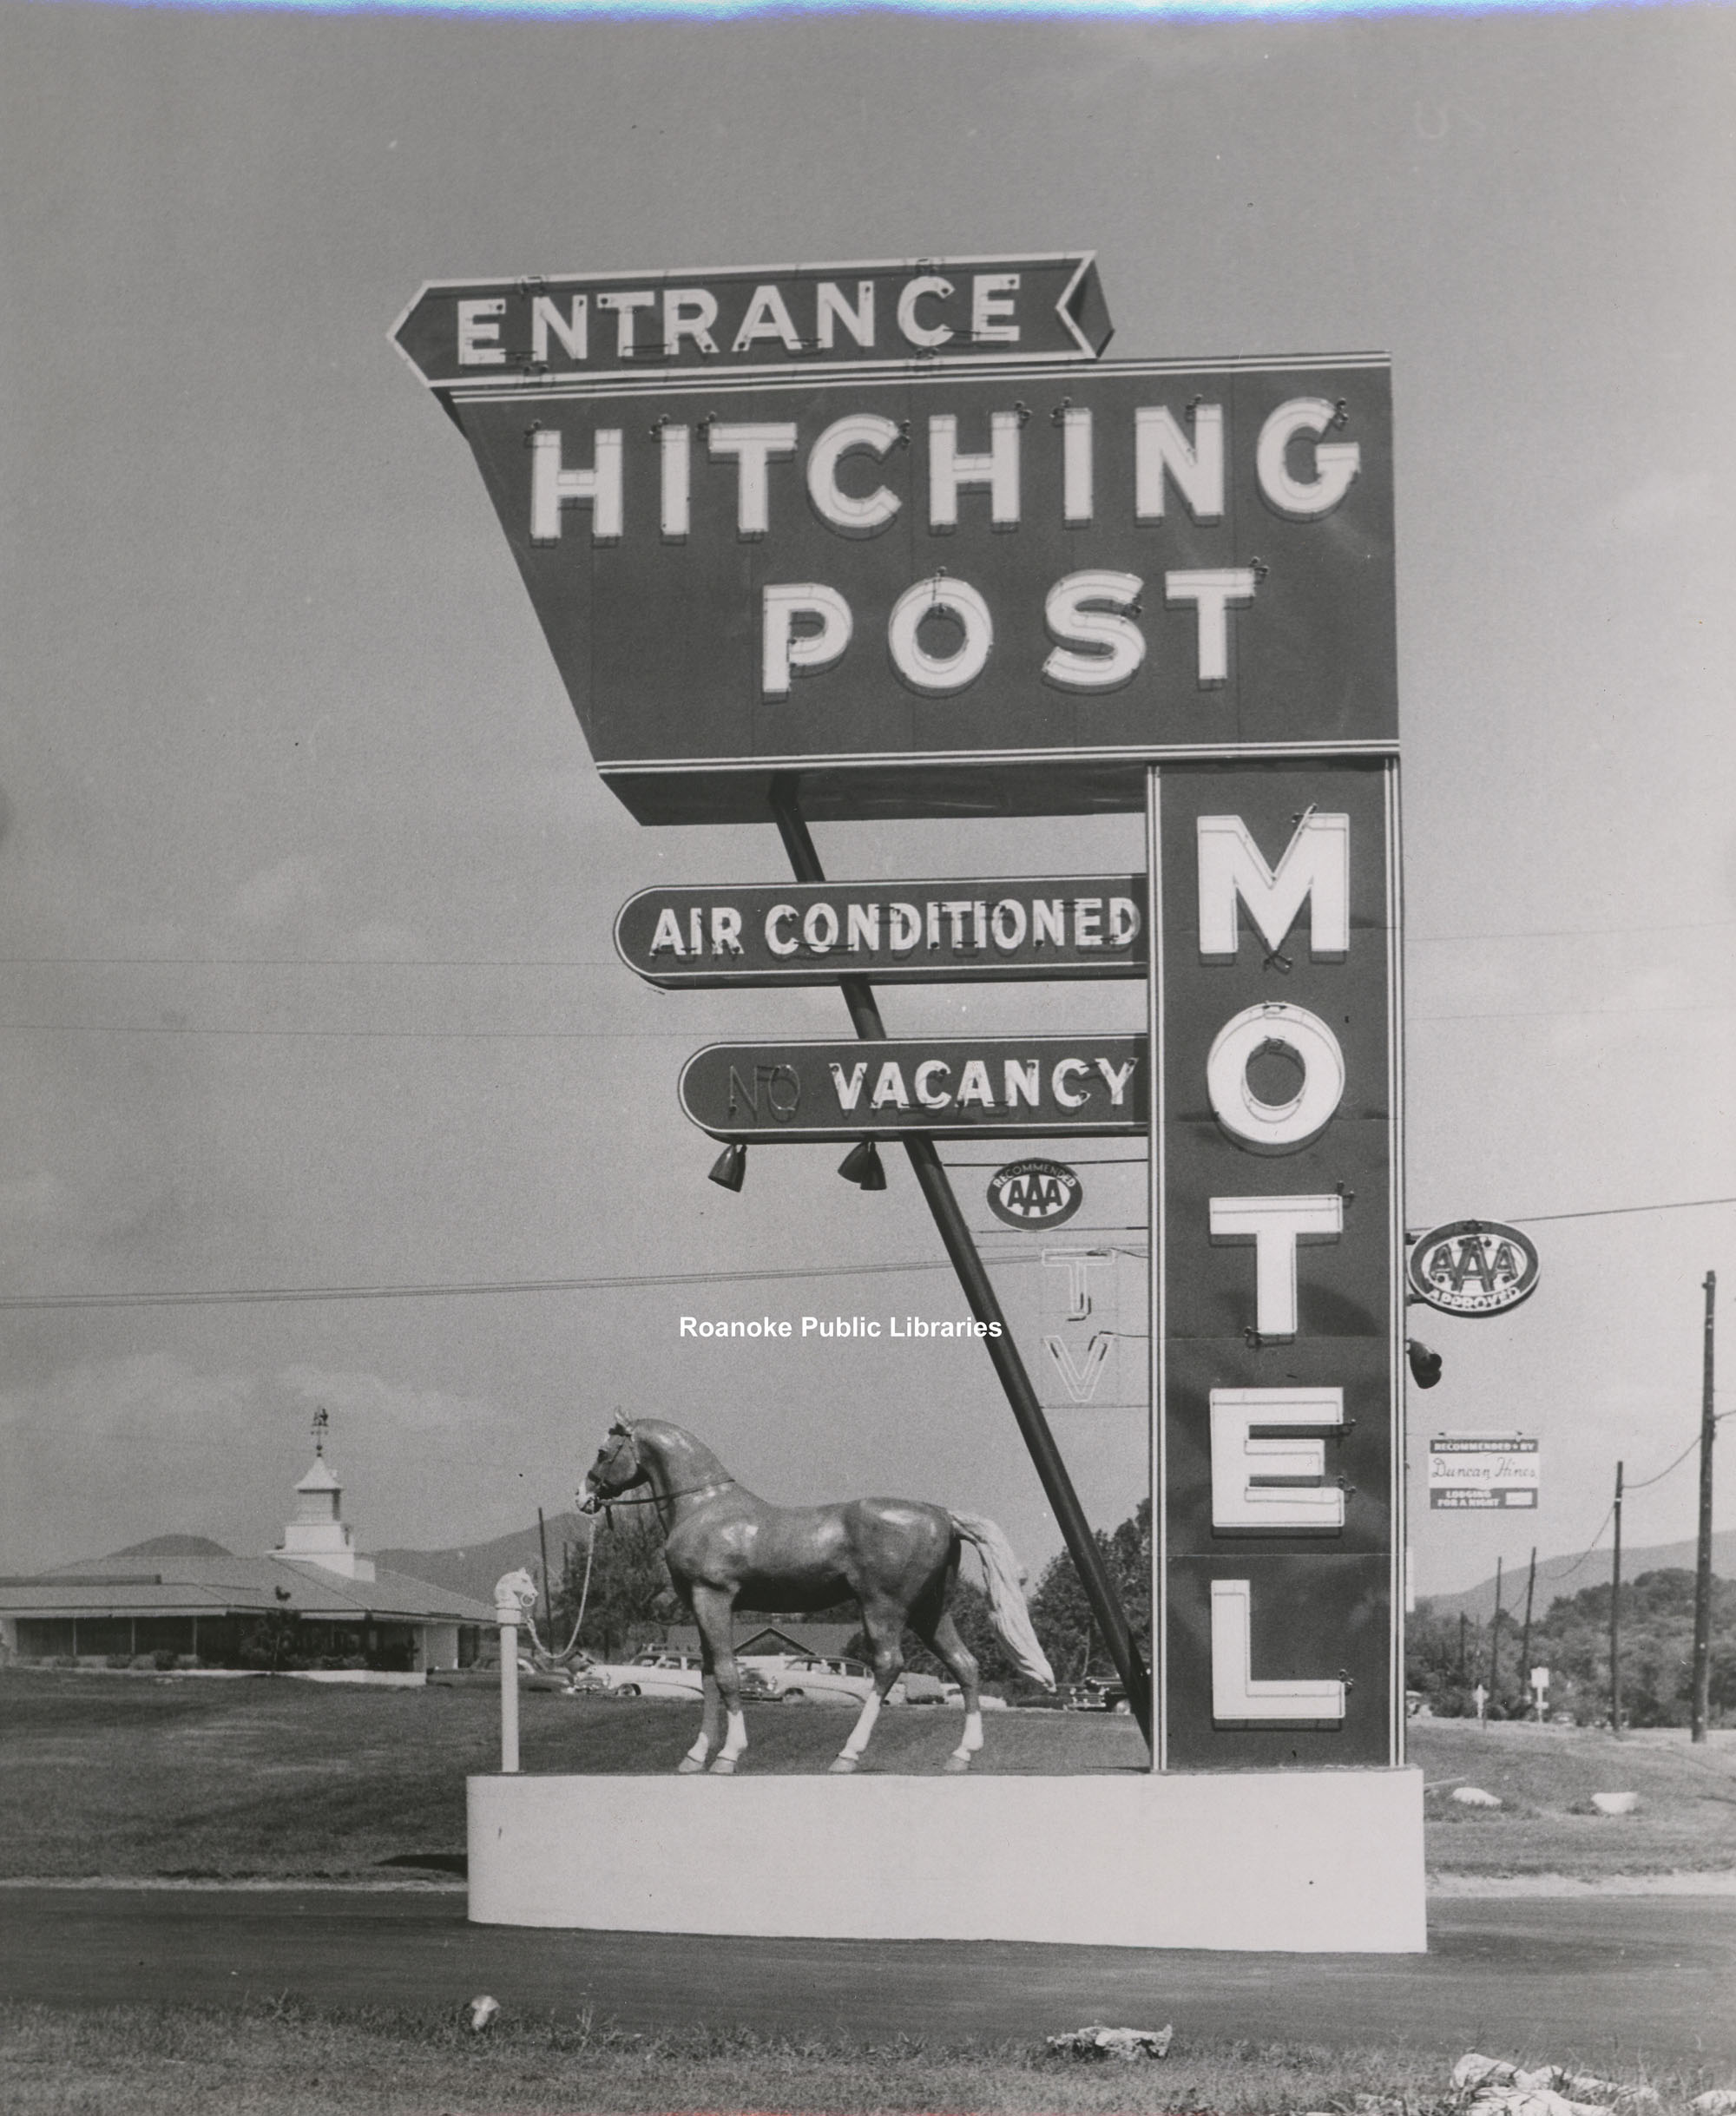 Davis 16.731 Hitching Post Motel · Virginia Room Digital